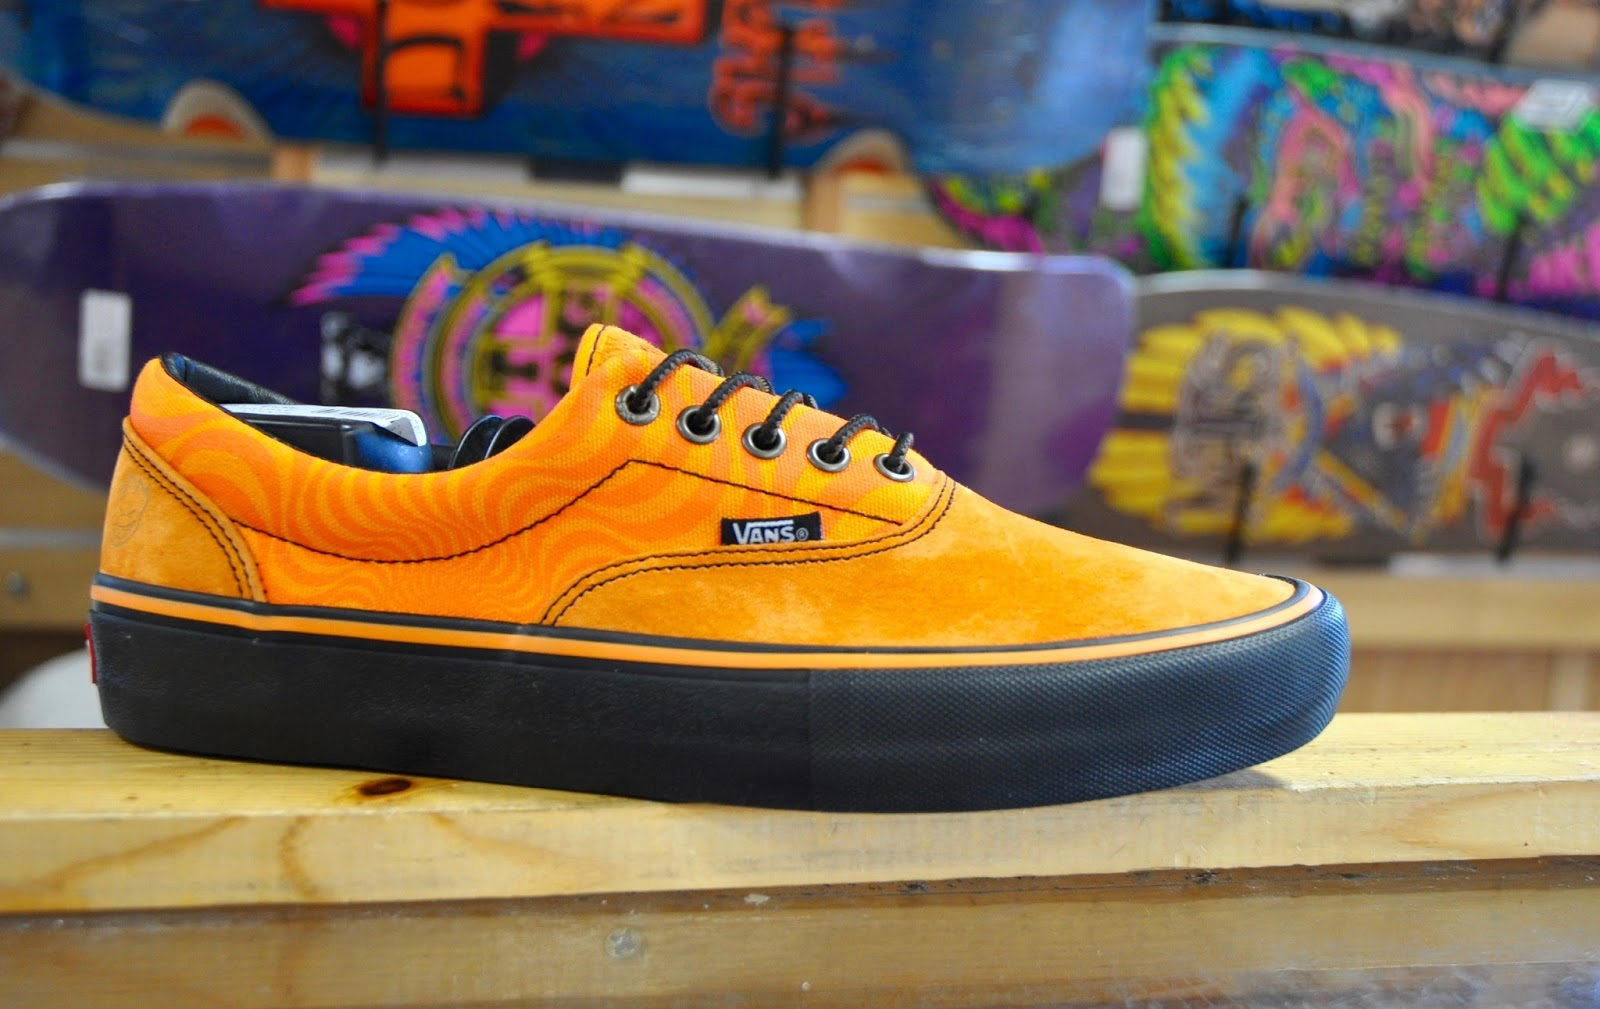 a7d450af3e Vans and spitfire have done a grip of great new Collab Shoes. This is the Era  Pro in a bright orange color way with a black vulc sole.